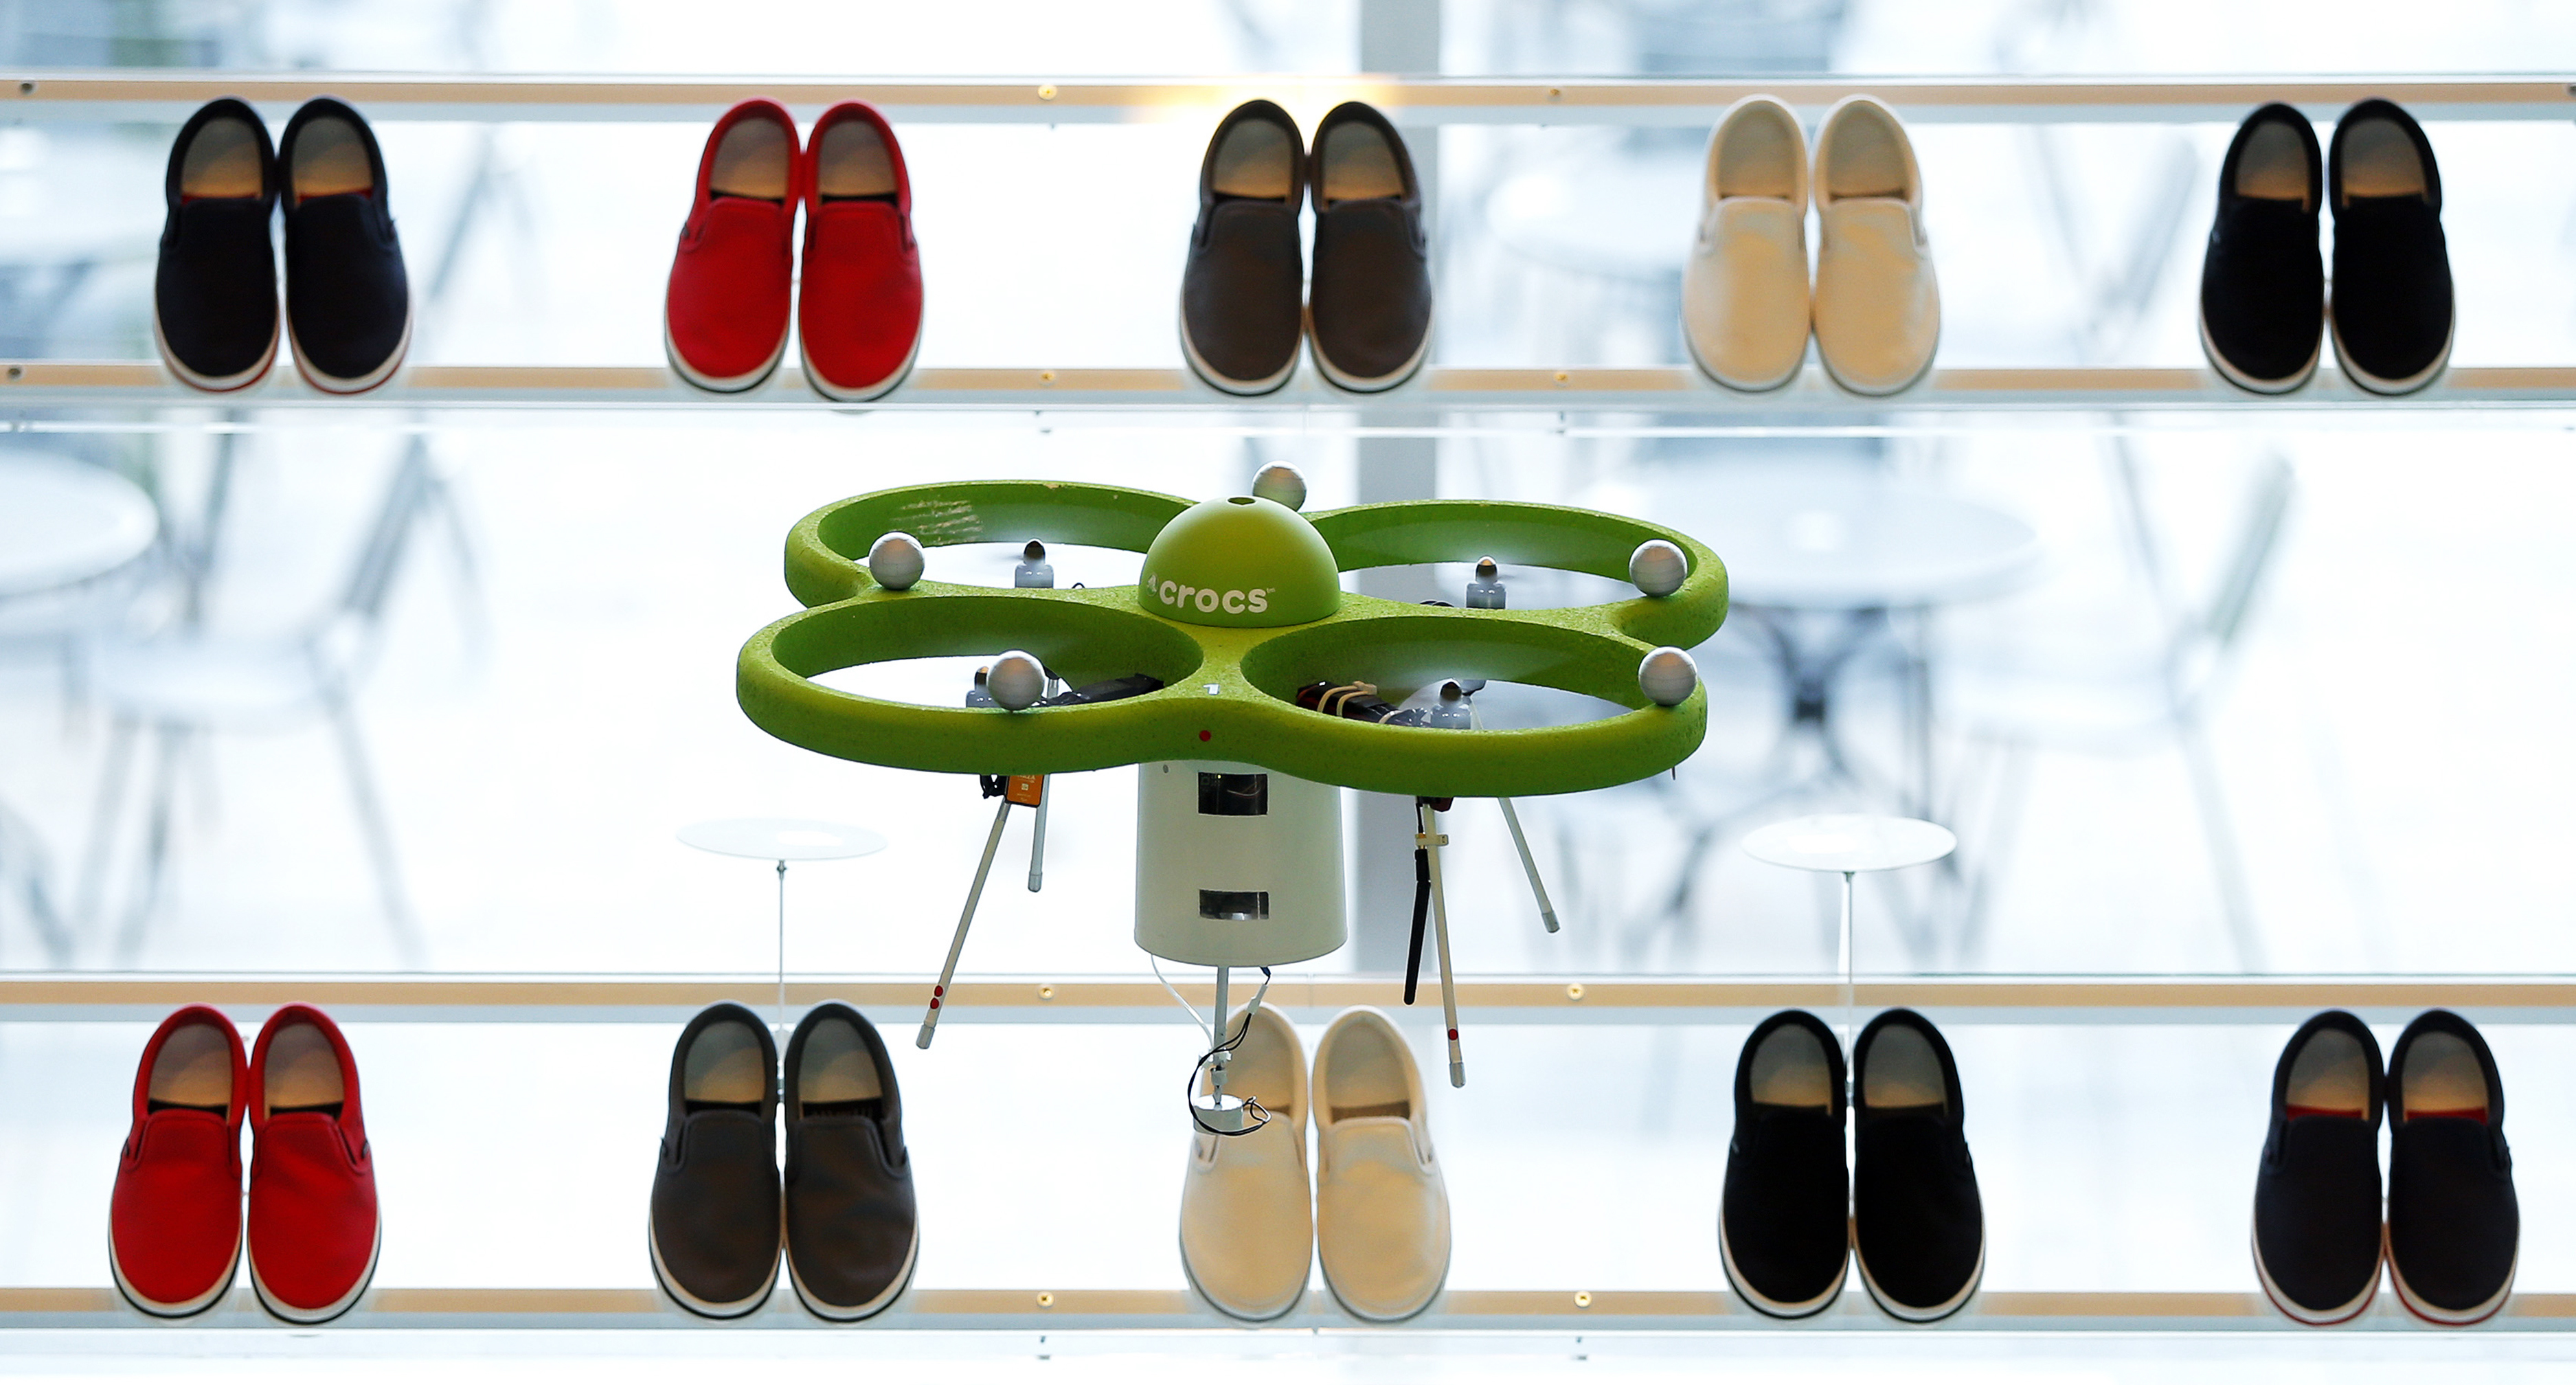 Crocs Japan GK Opens World's First Aerial Store With Drones